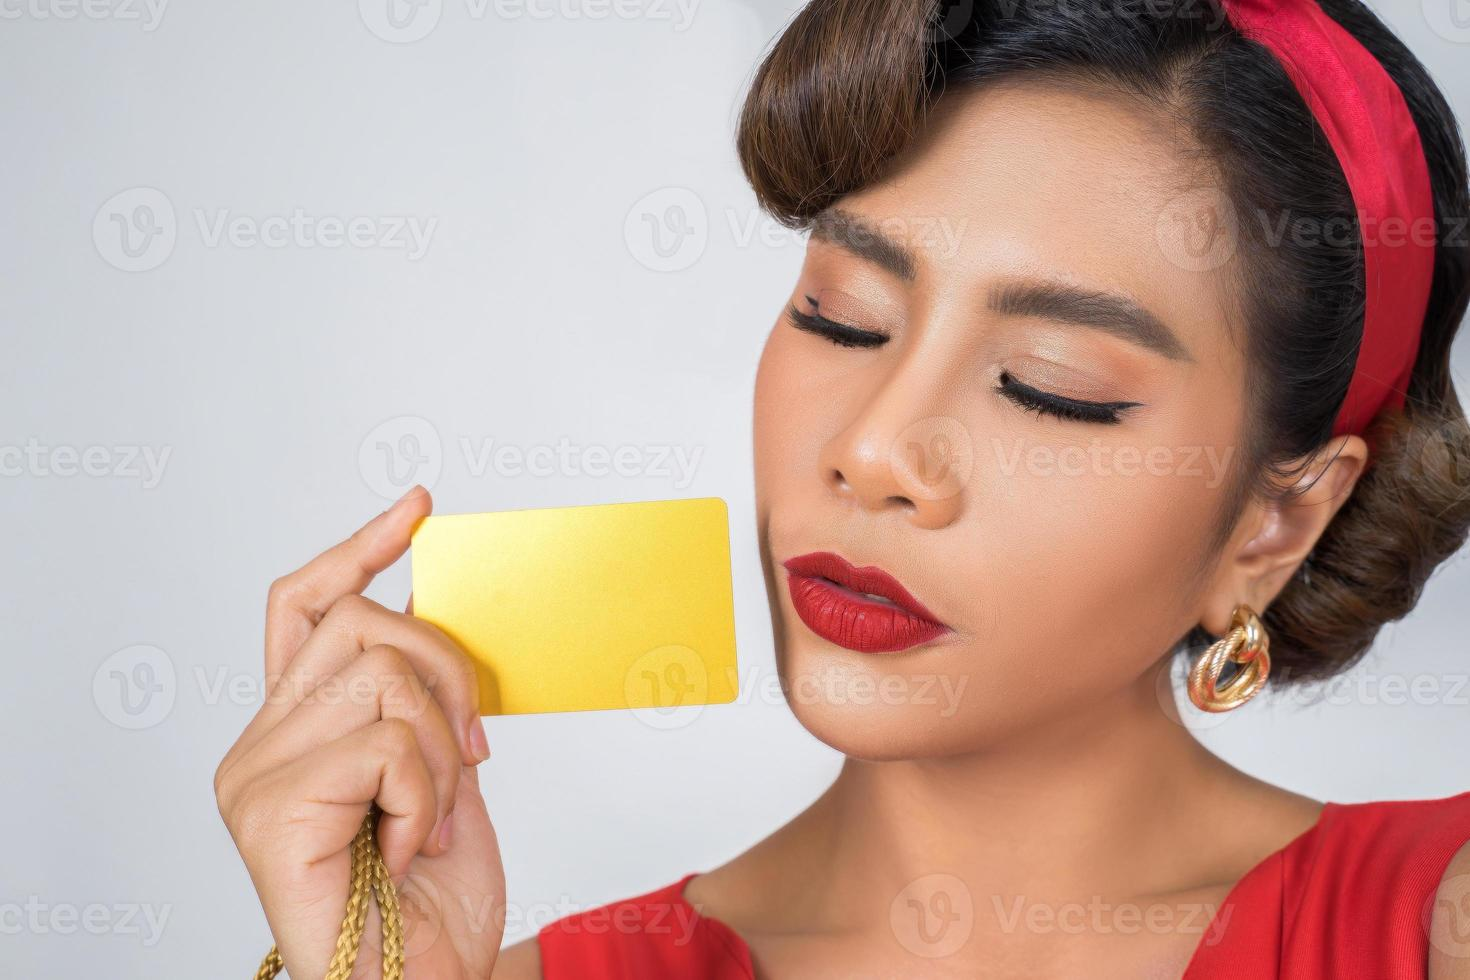 Portrait of a woman holding a credit card photo